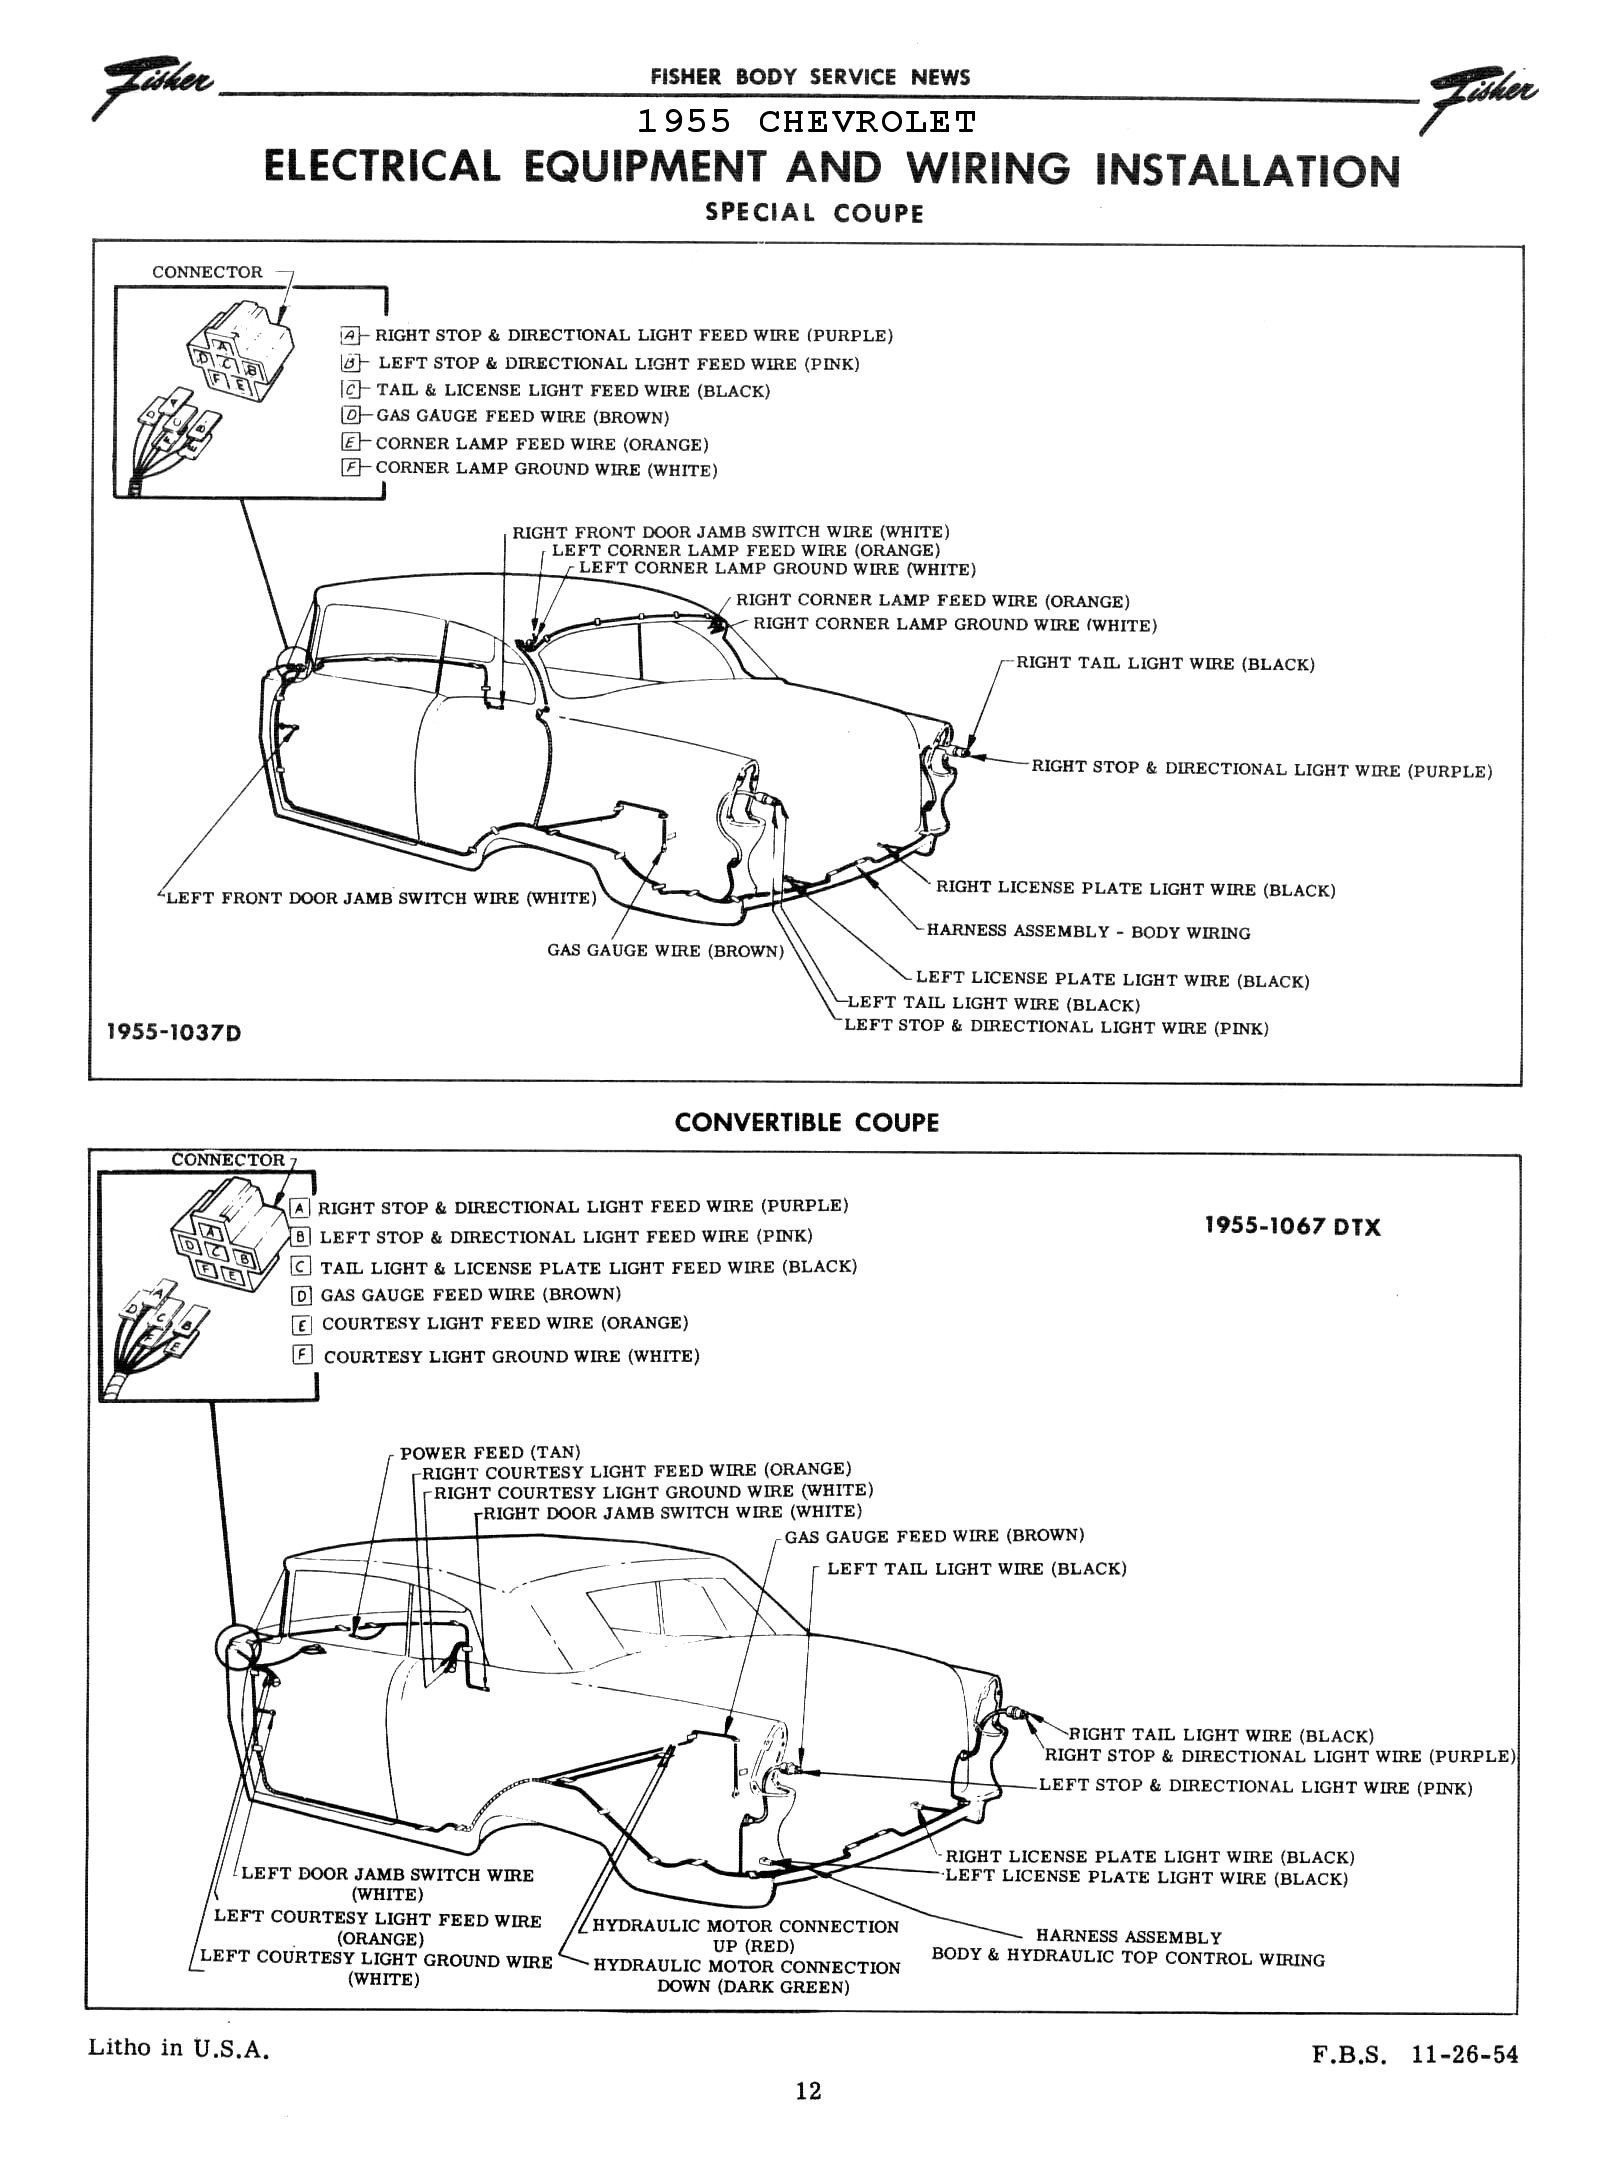 55fsn140612 chevy wiring diagrams 1953 chevy bel air wiring diagram at readyjetset.co